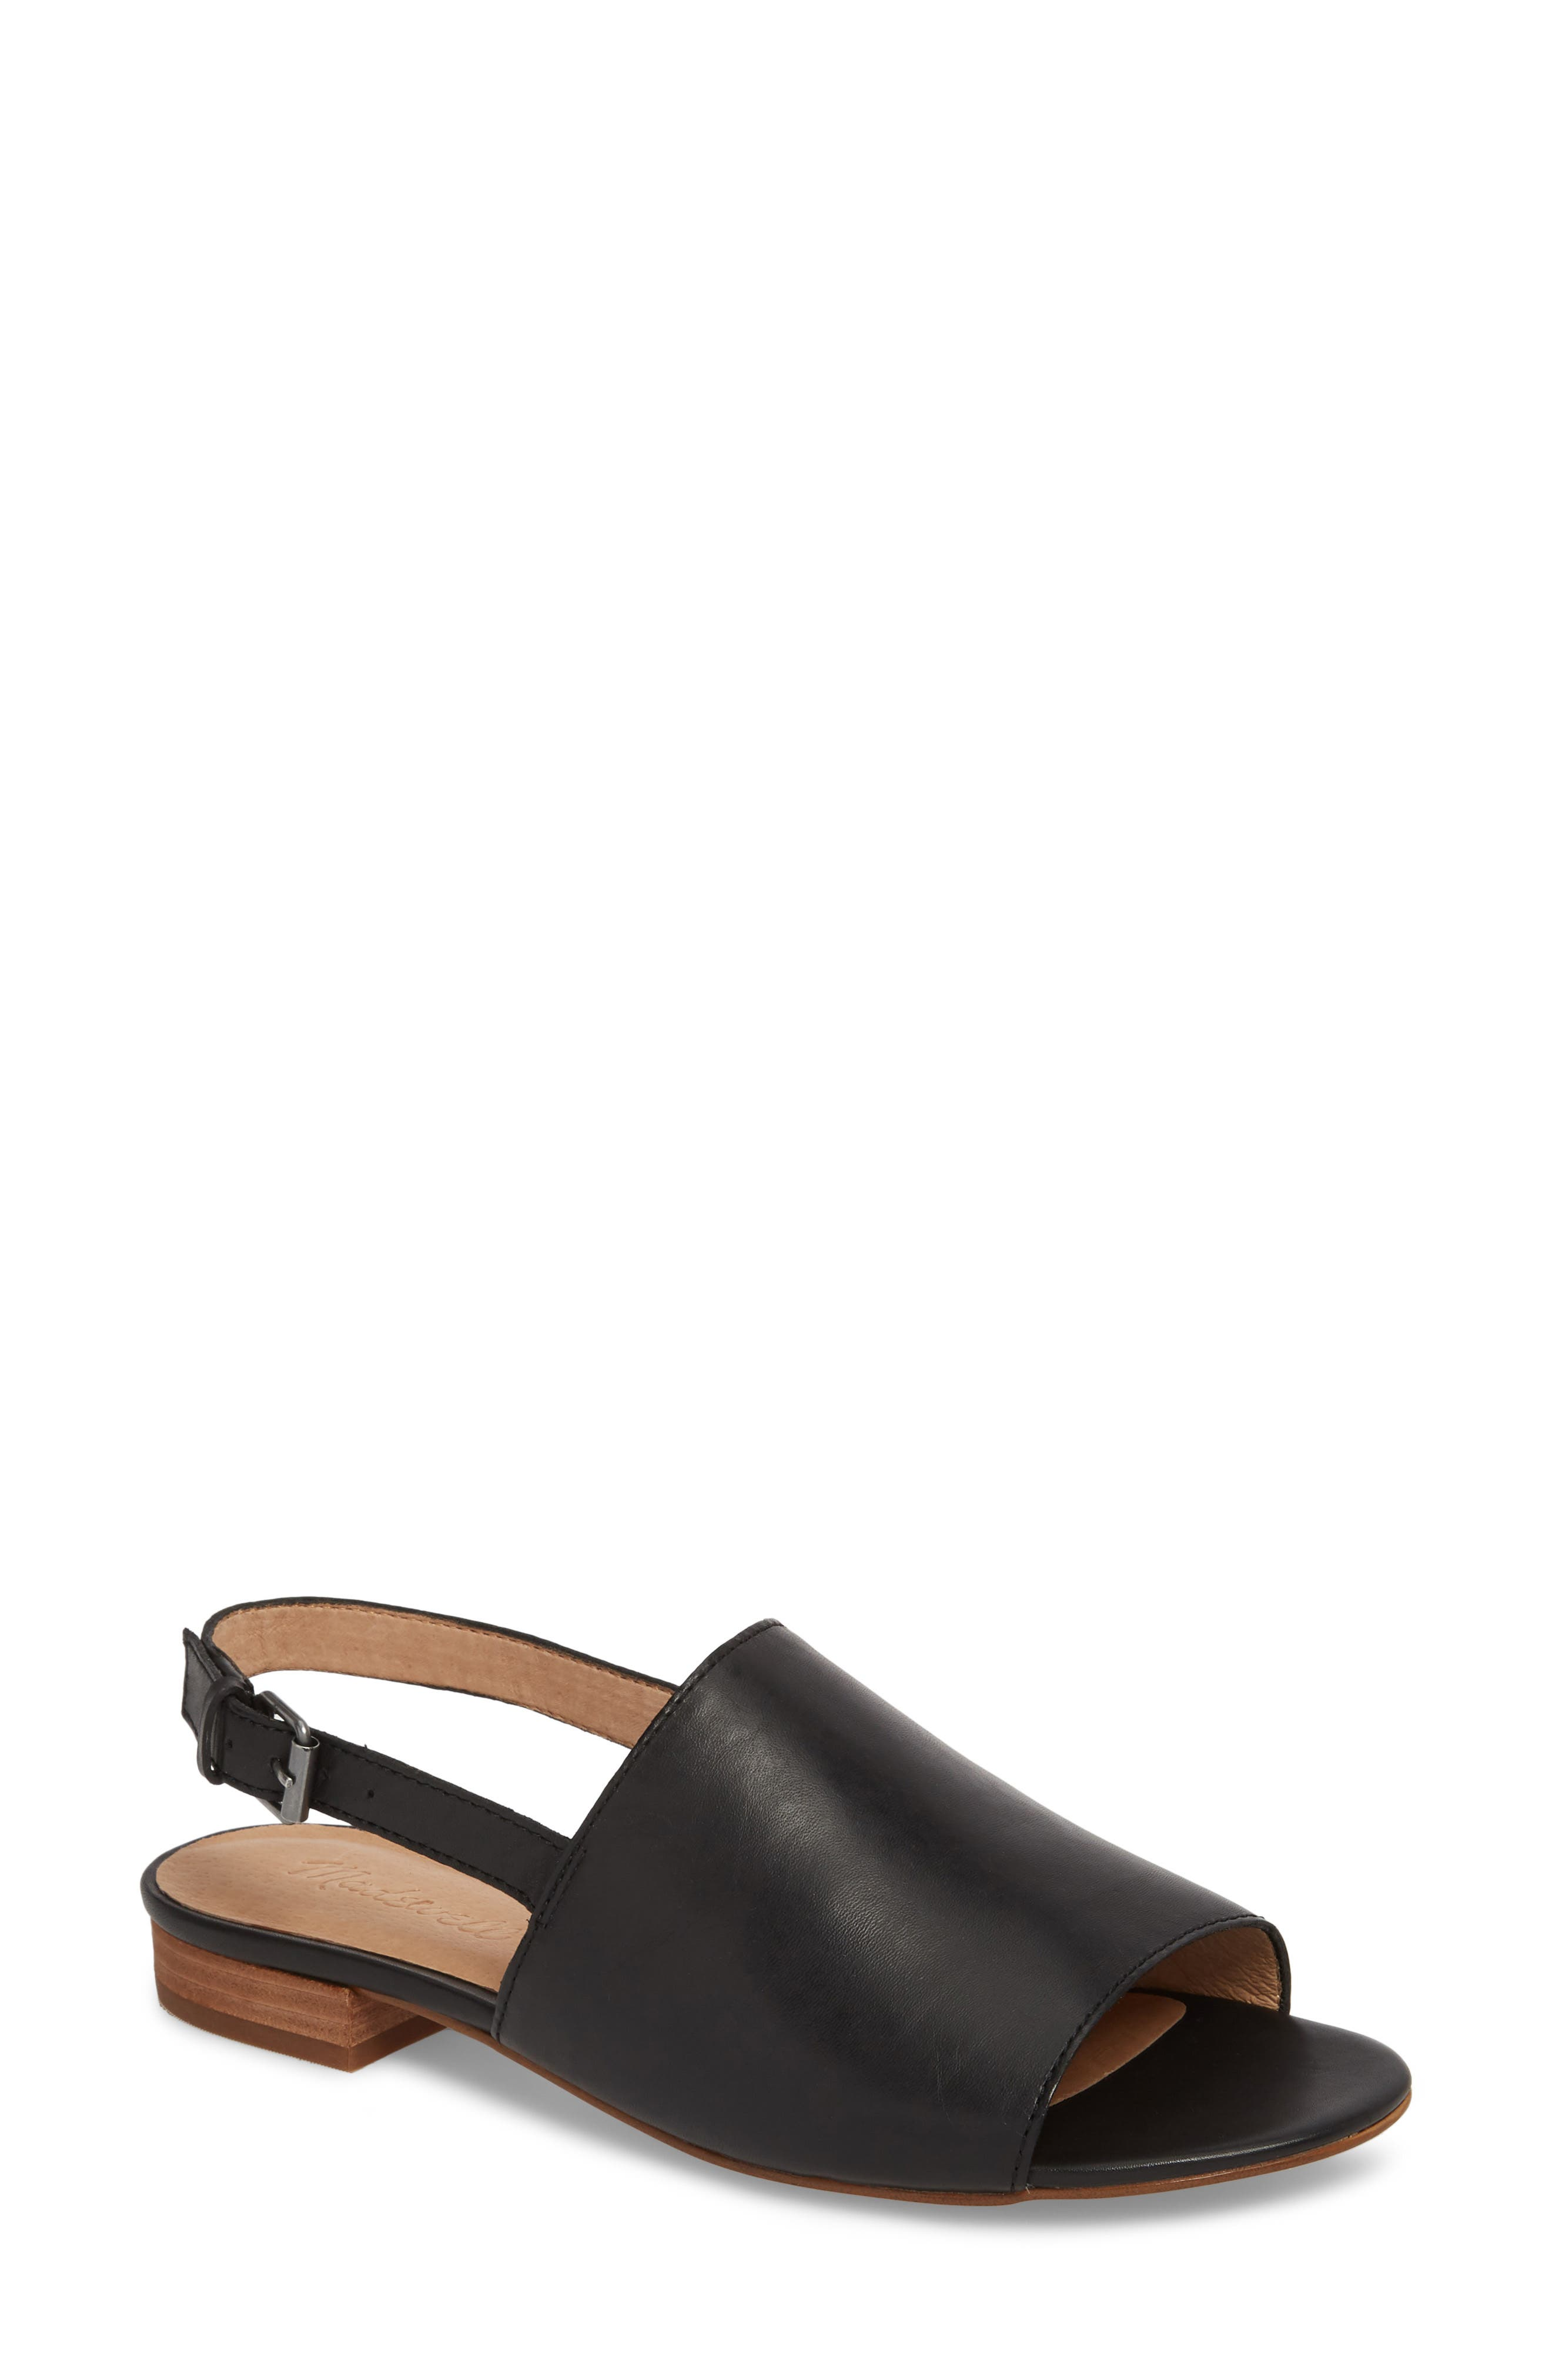 Sandals for Women On Sale, Black, Leather, 2017, 3.5 4.5 5.5 6.5 8.5 Valentino